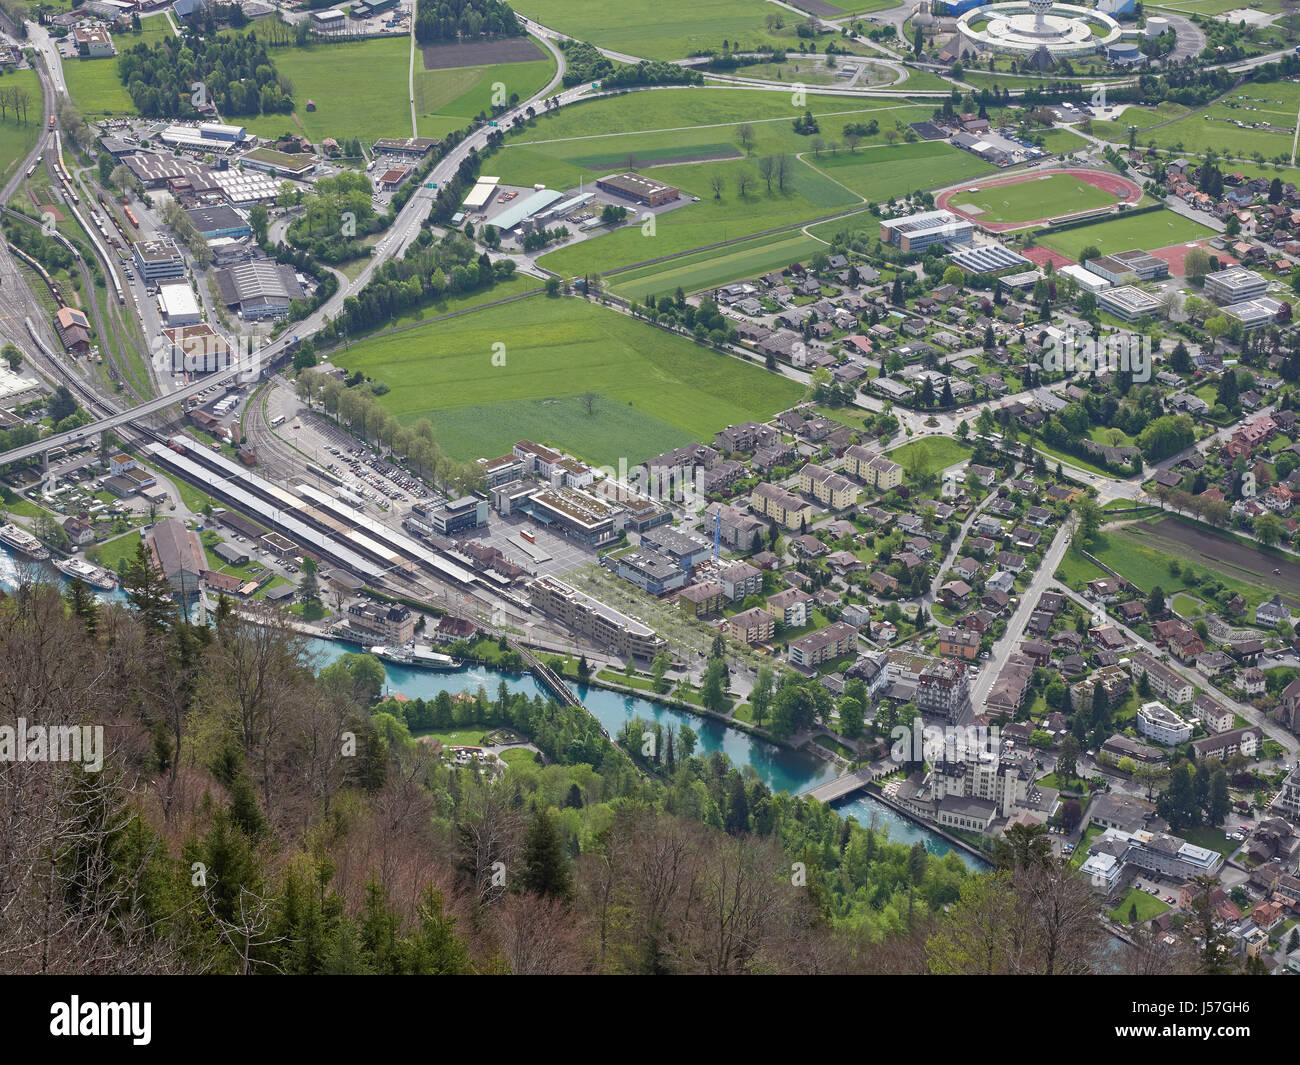 Switzerland Interlaken and Interlaken Ost station from Harder Kulm with the river Aare between the two lakes Brienz - Stock Image